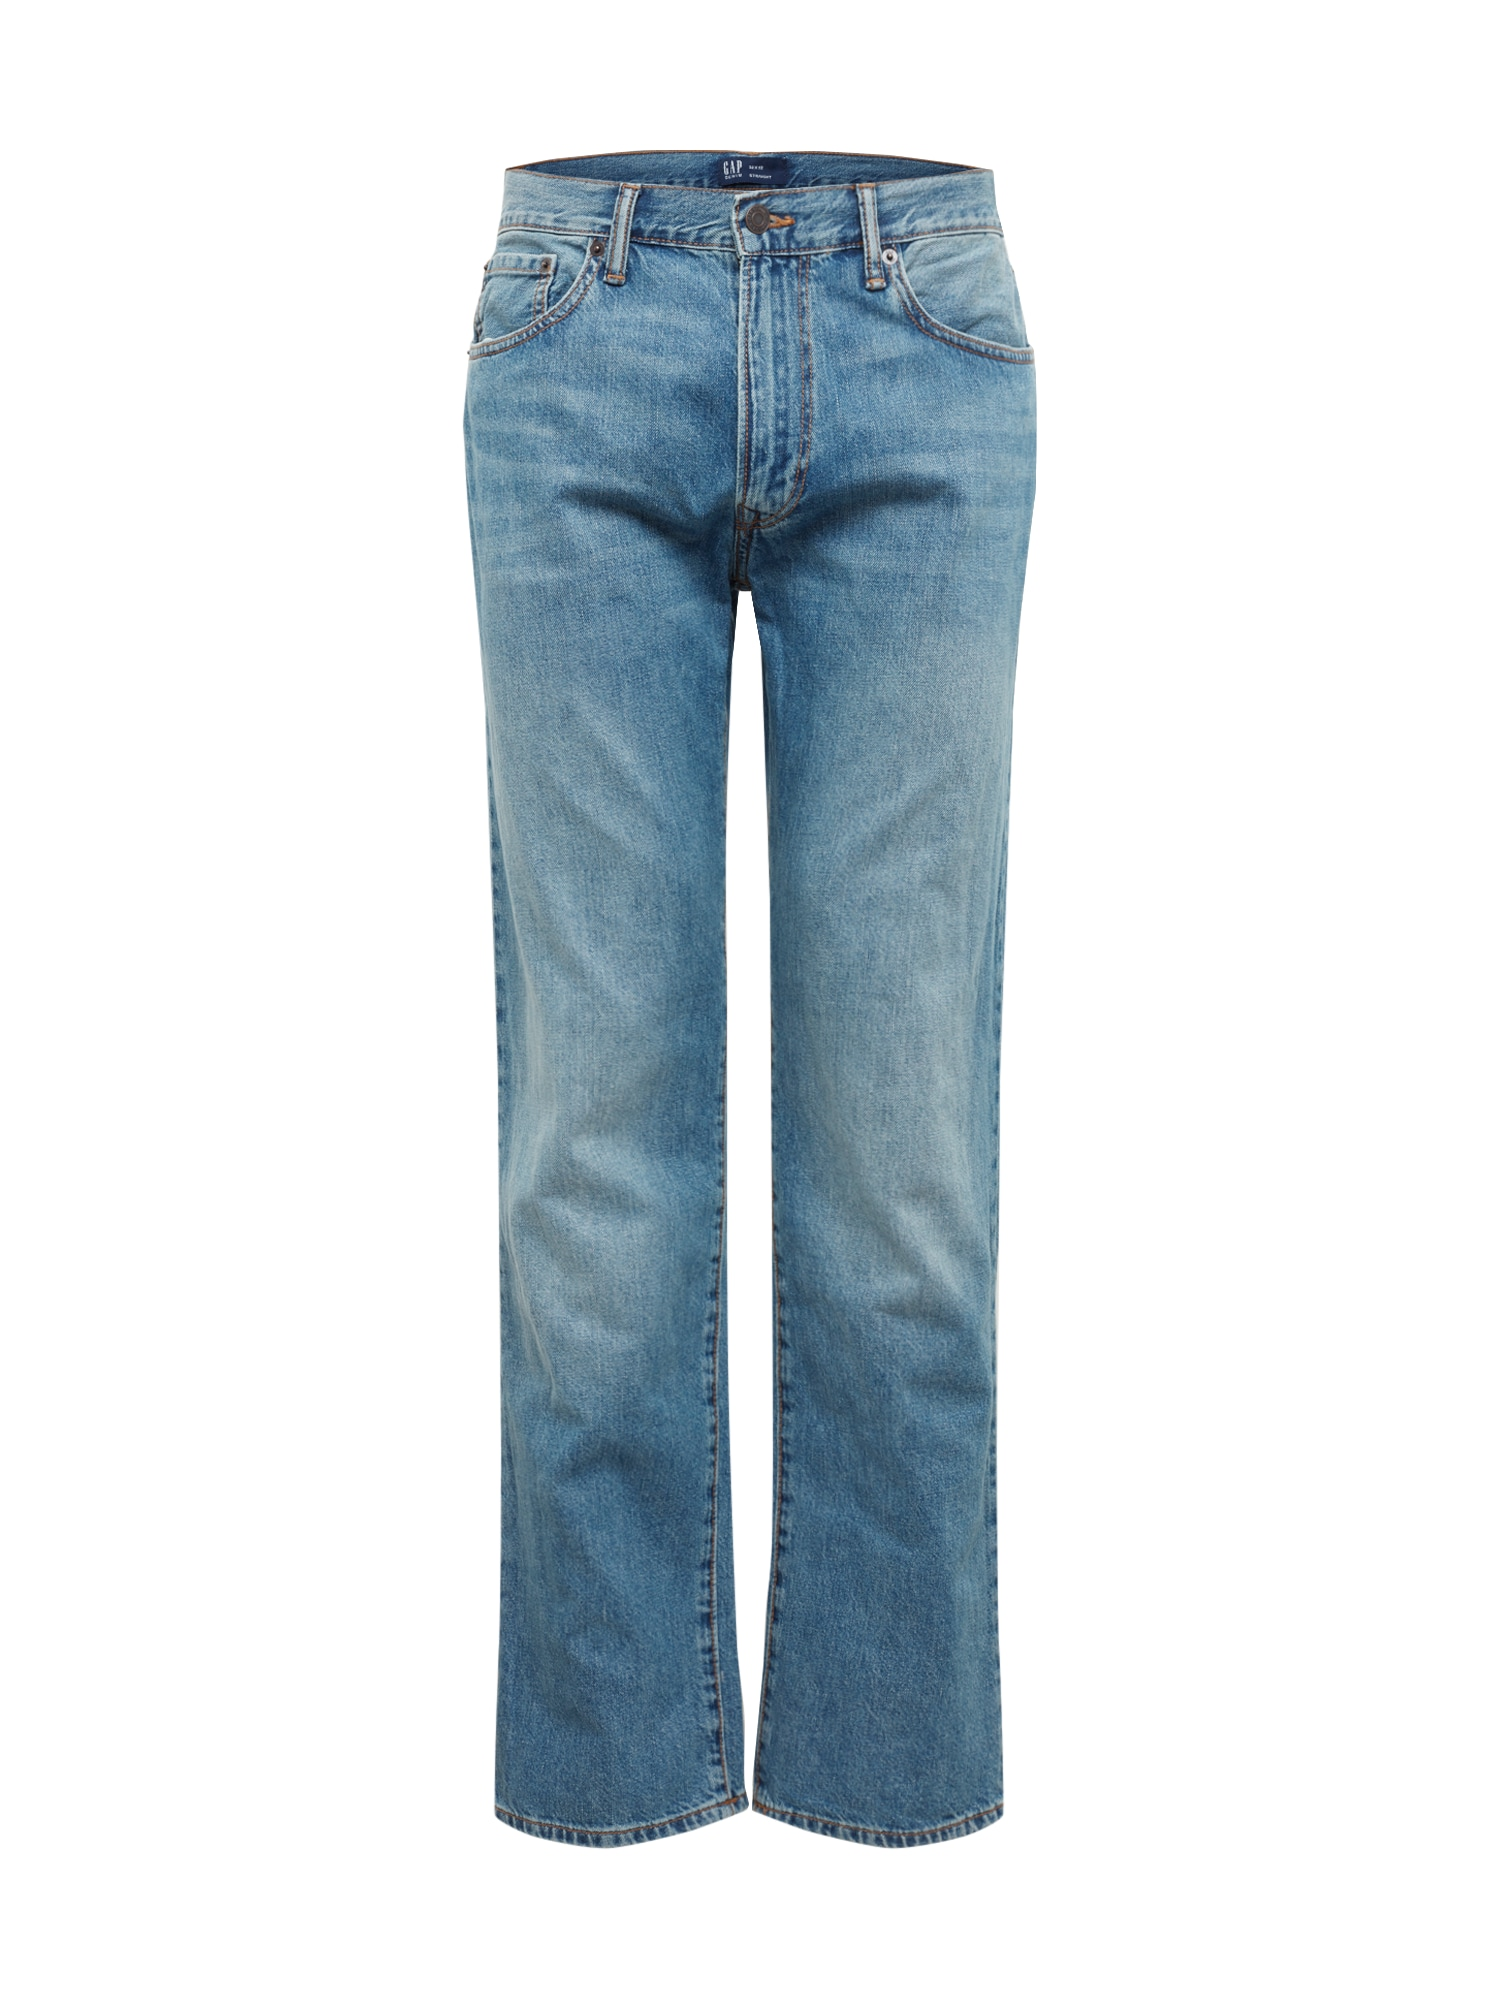 GAP Džínsy 'V-STRAIGHT OPP SIERRA VISTA'  modrá denim